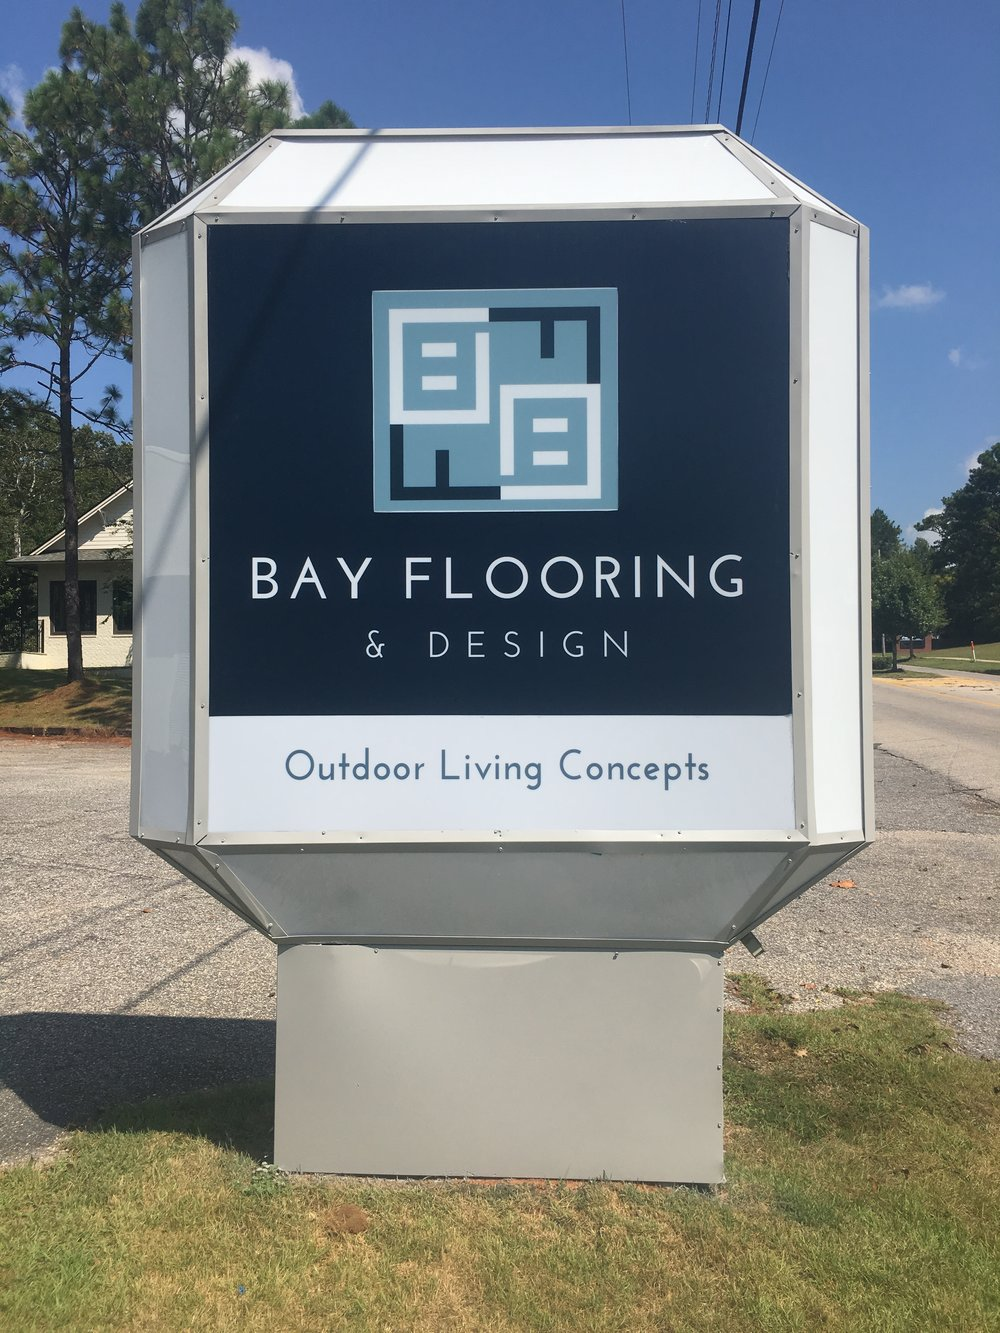 Bay Flooring - Hadley Binion Designs